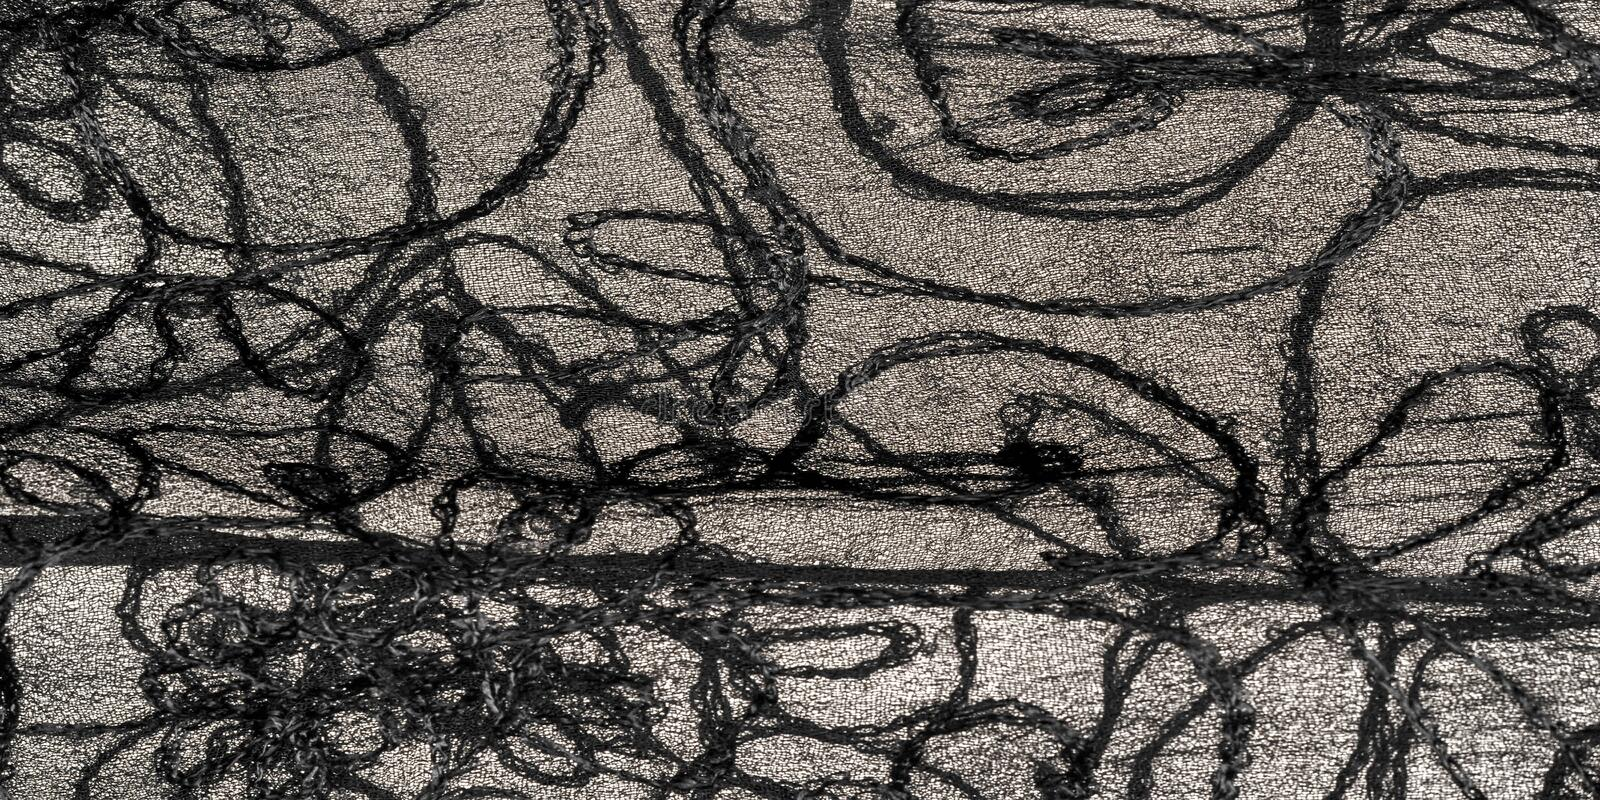 Texture background pattern, silk fabric, black lace pattern, high definition wallpaper can make your computer and mobile device royalty free stock photo